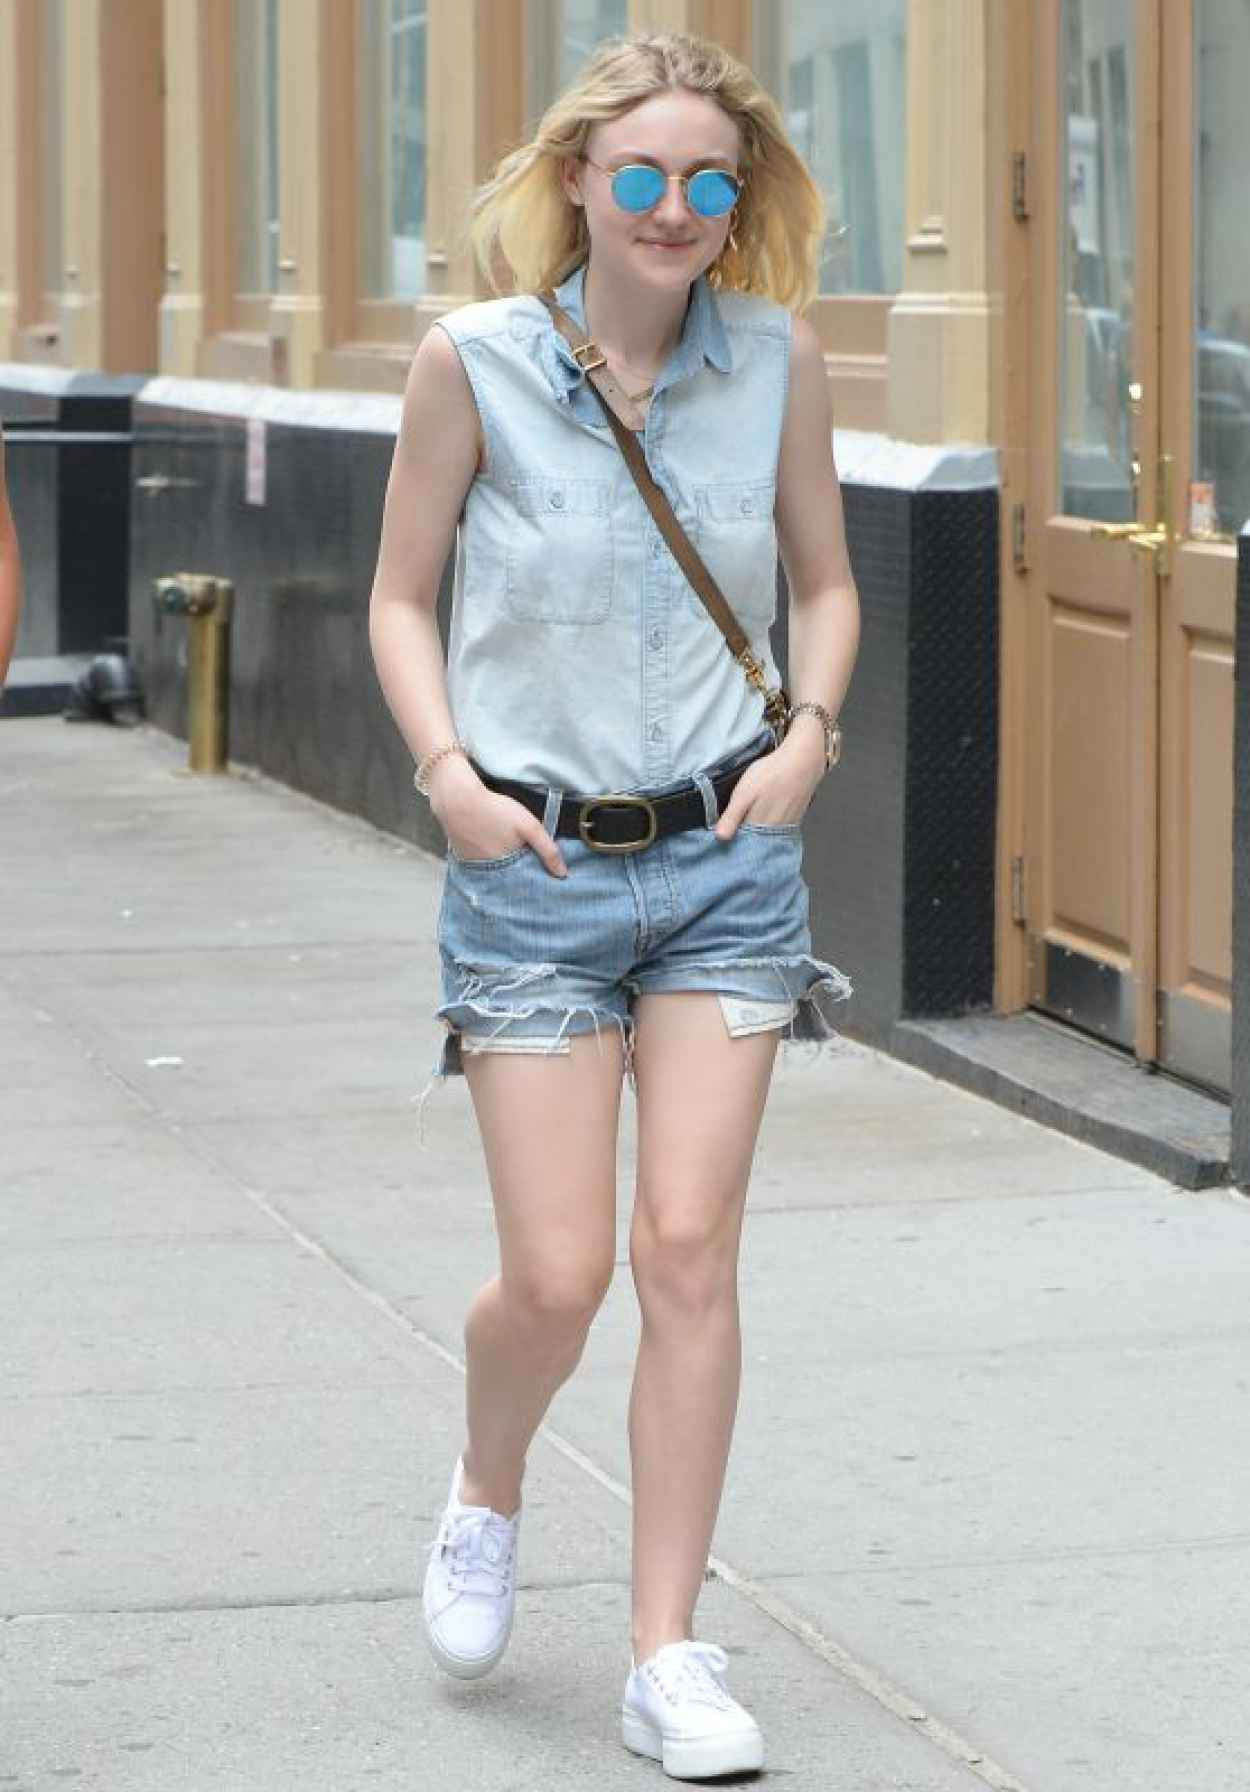 Dakota Fanning Leggy in Jeans Shorts - Soho NYC, June 2015-1